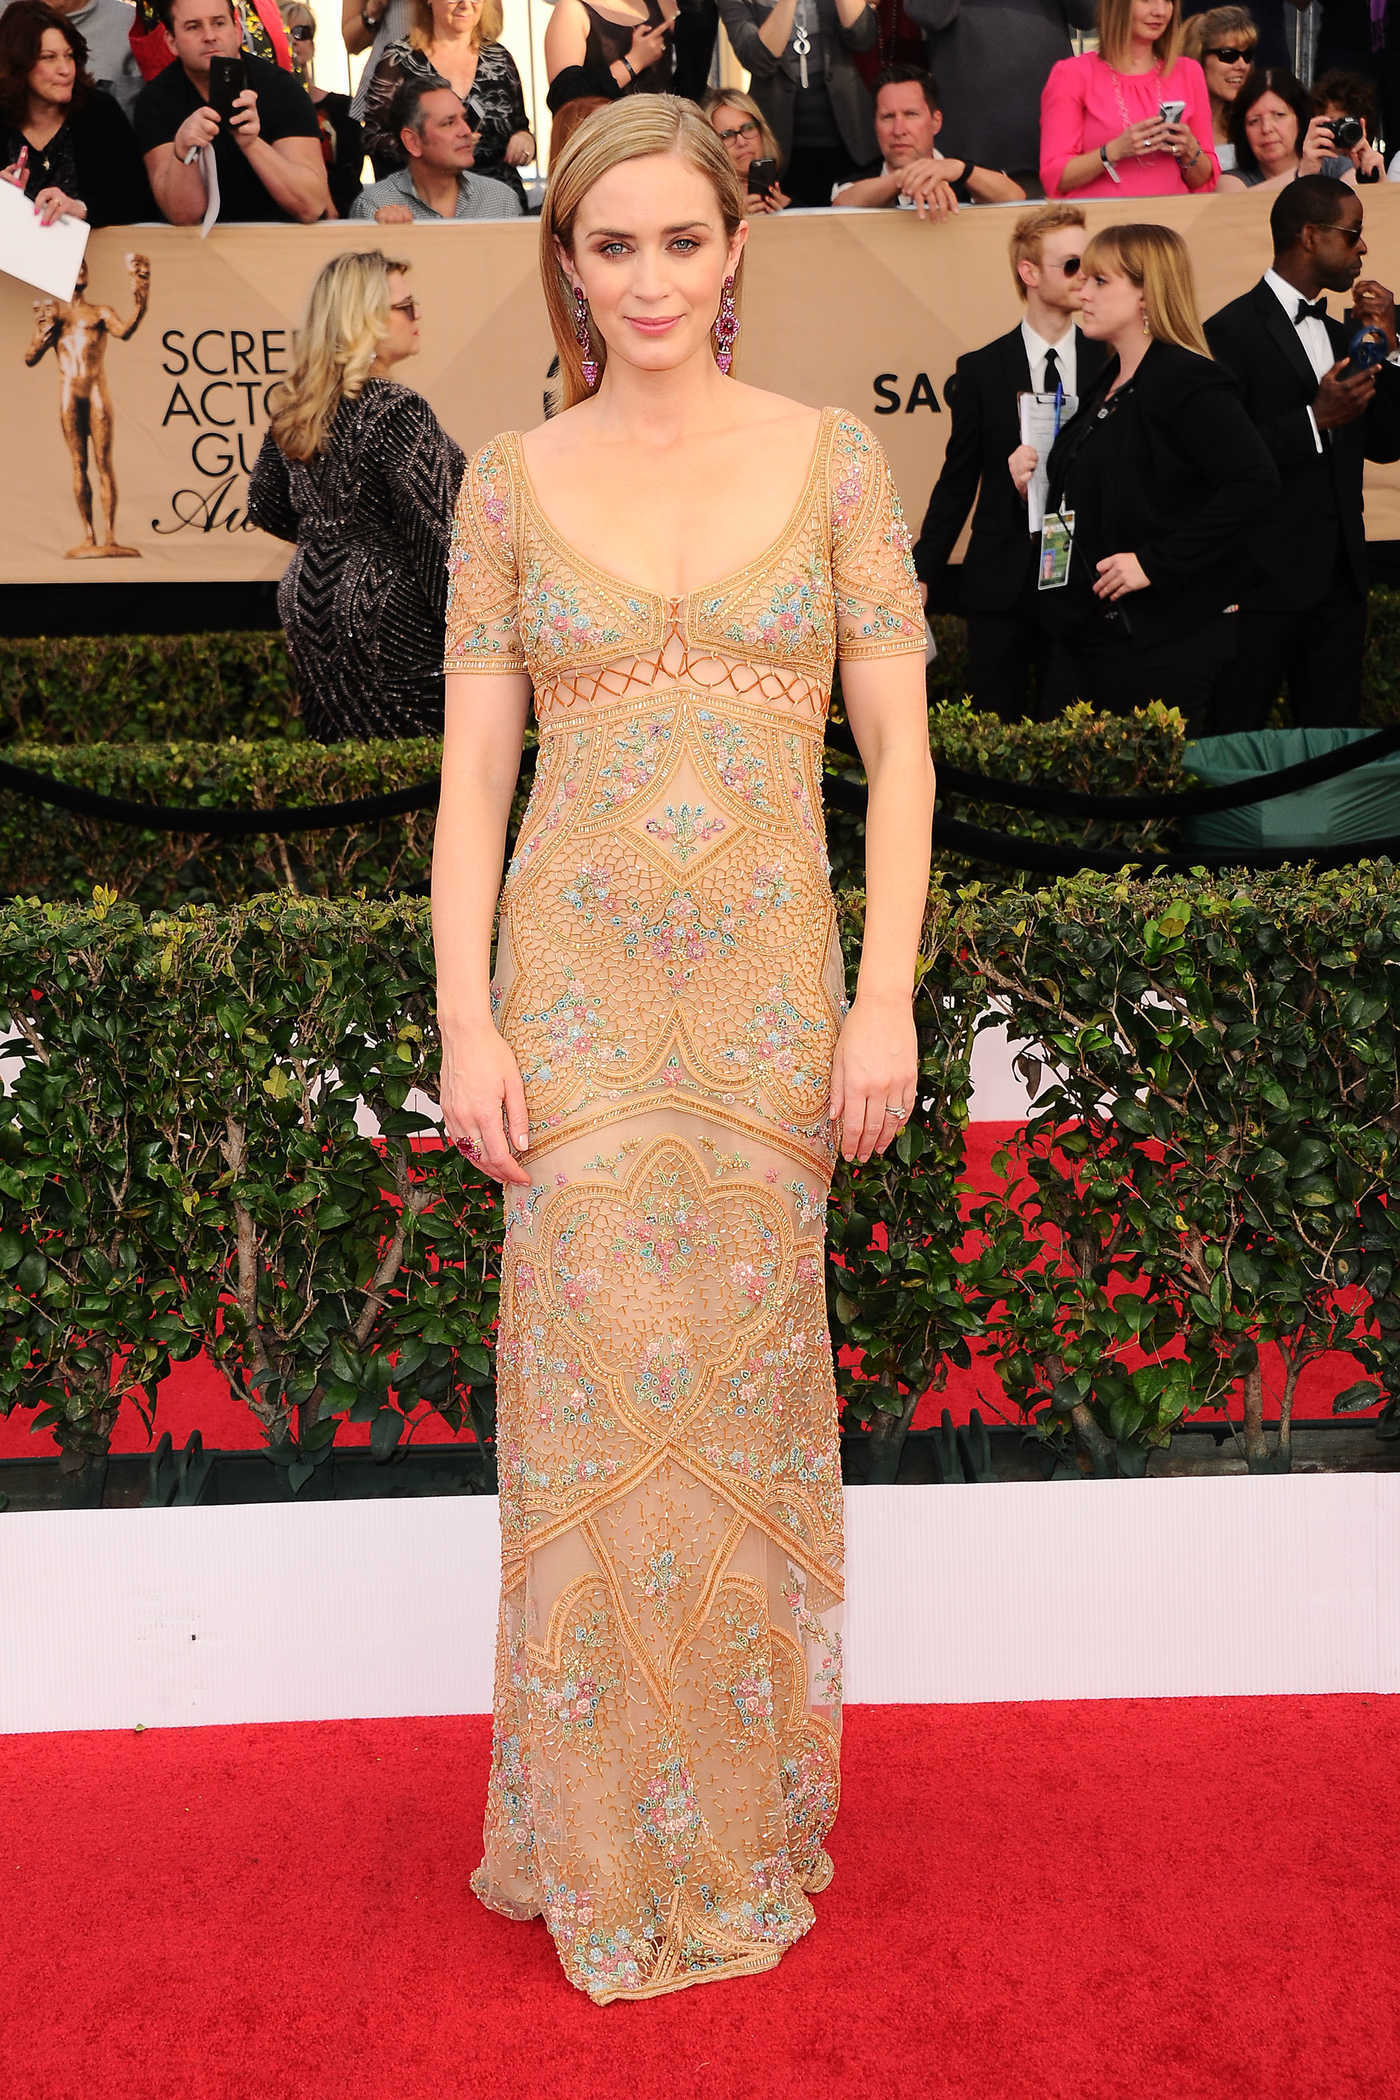 Emily Blunt at the 23rd Annual Screen Actors Guild Awards in Los Angeles 01/29/2017